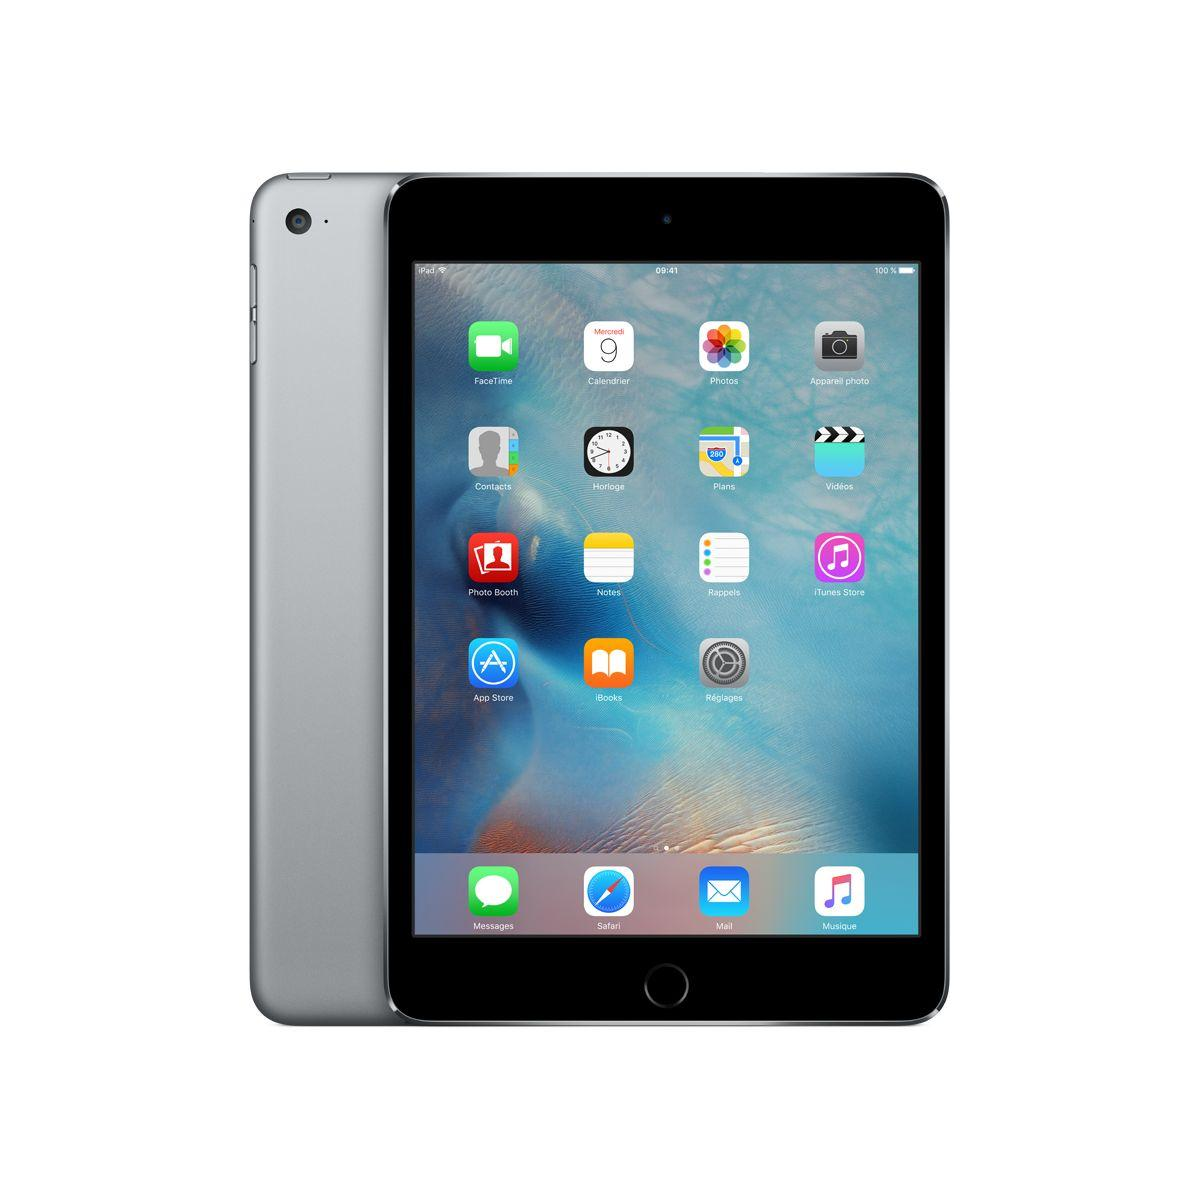 Apple ipad mini 4 128go gris sidéral (photo)